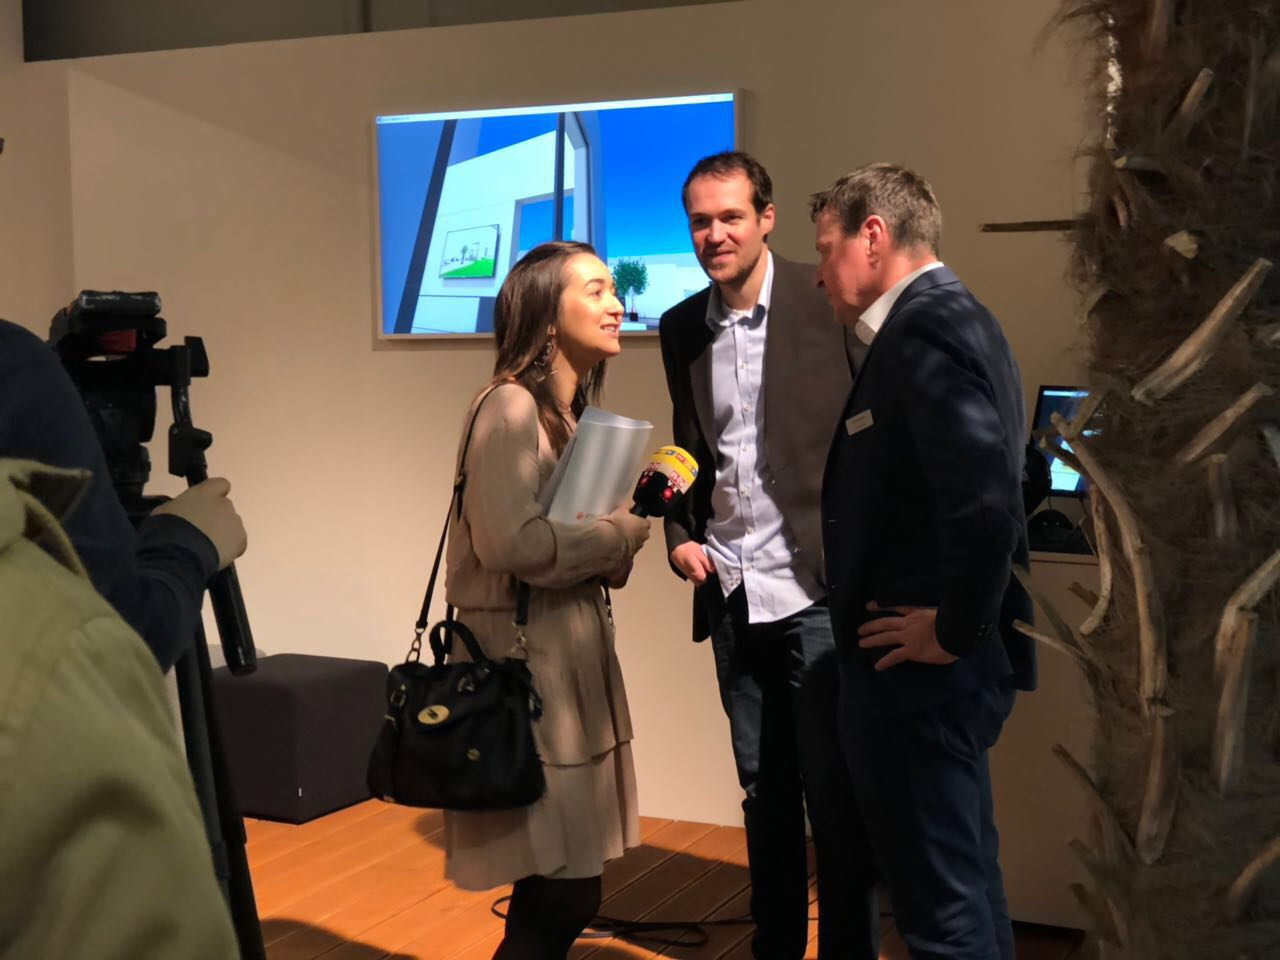 A look back at imm cologne 2018